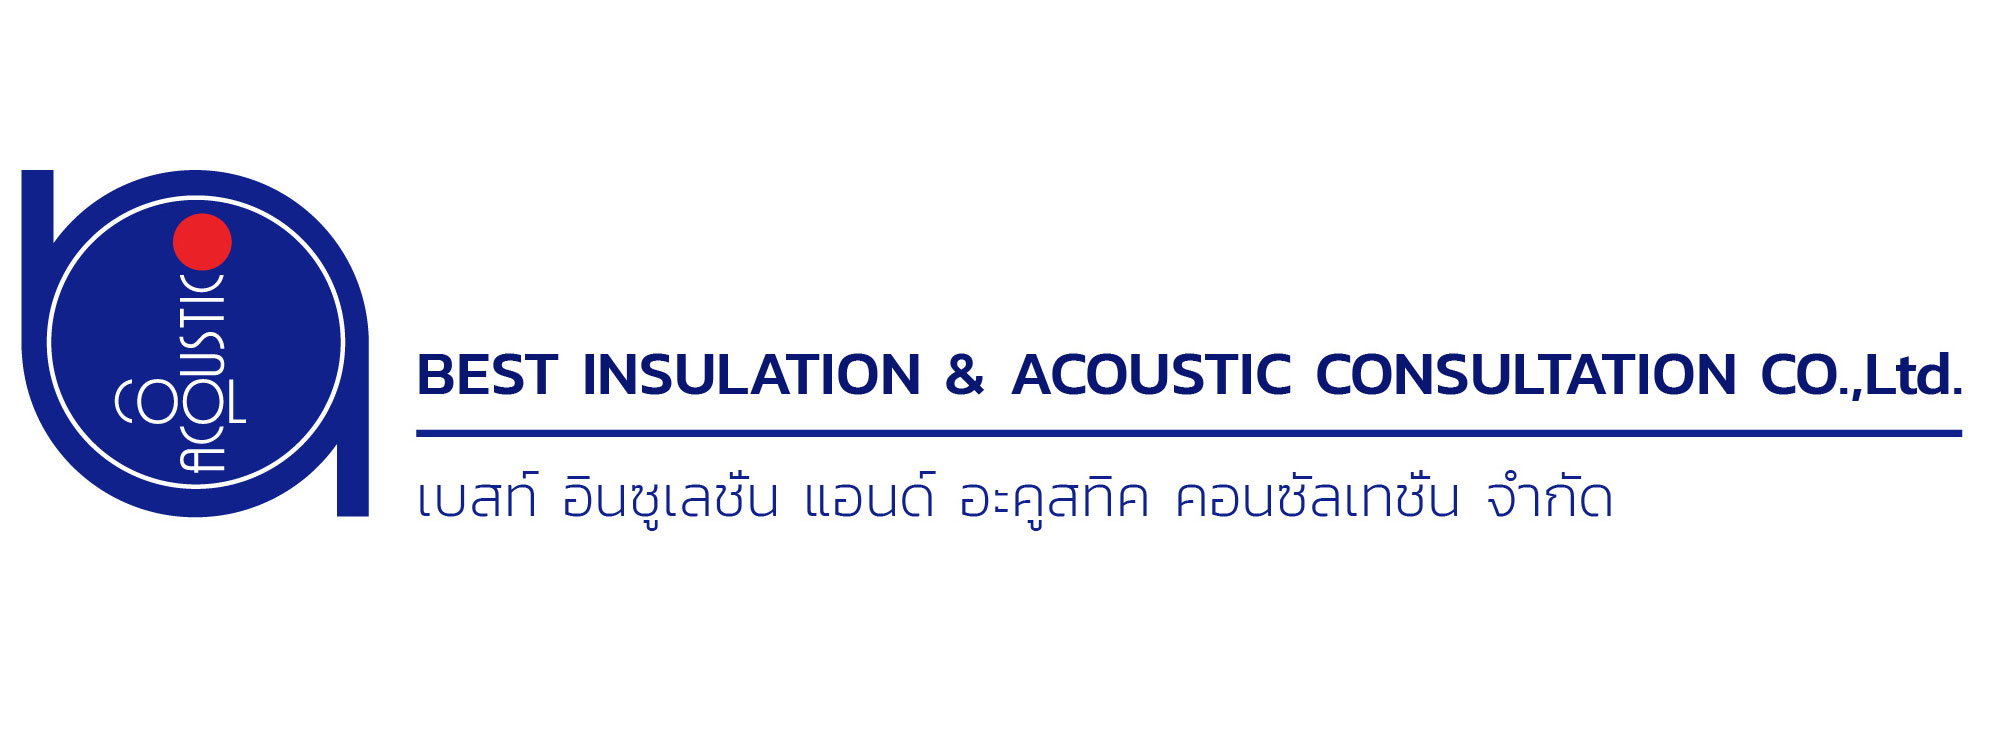 cool acoustic pattayatoday pattaya today insulation factory business office